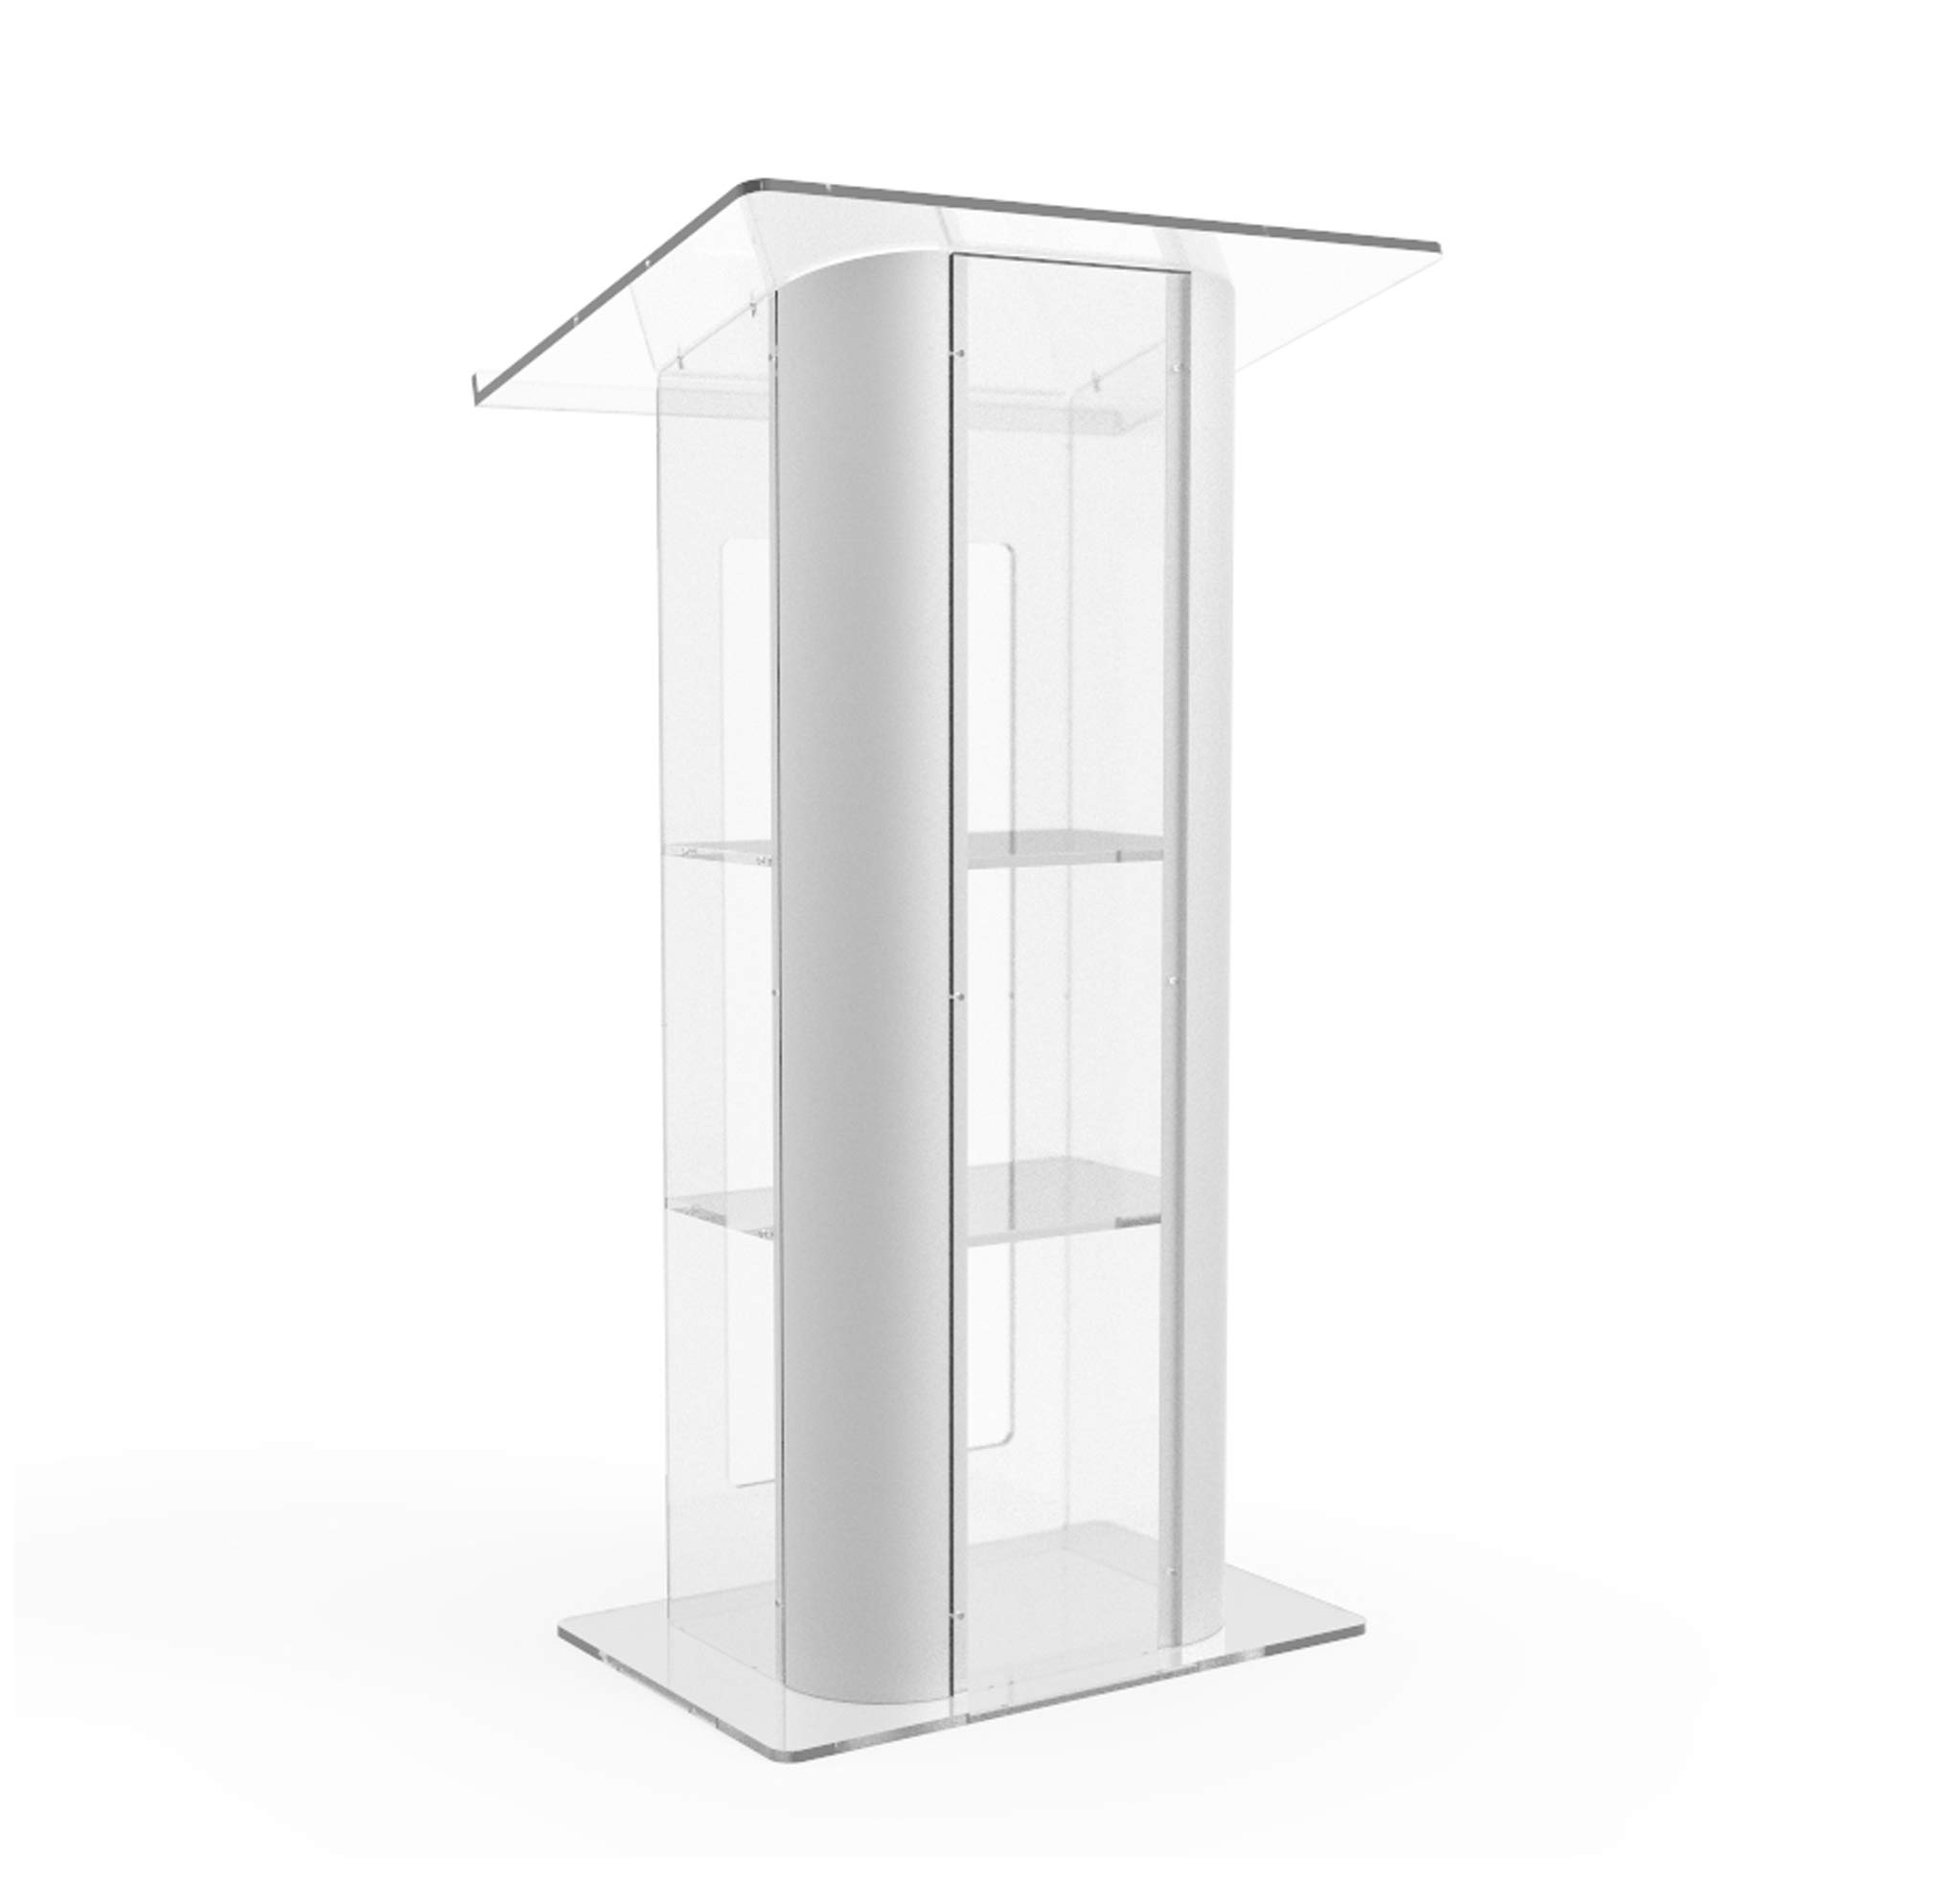 FixtureDisplays Brushed Stainless Steel Sides Pulpit Clear Acrylic Plexiglass Podium Curved Lectern 14307NEW